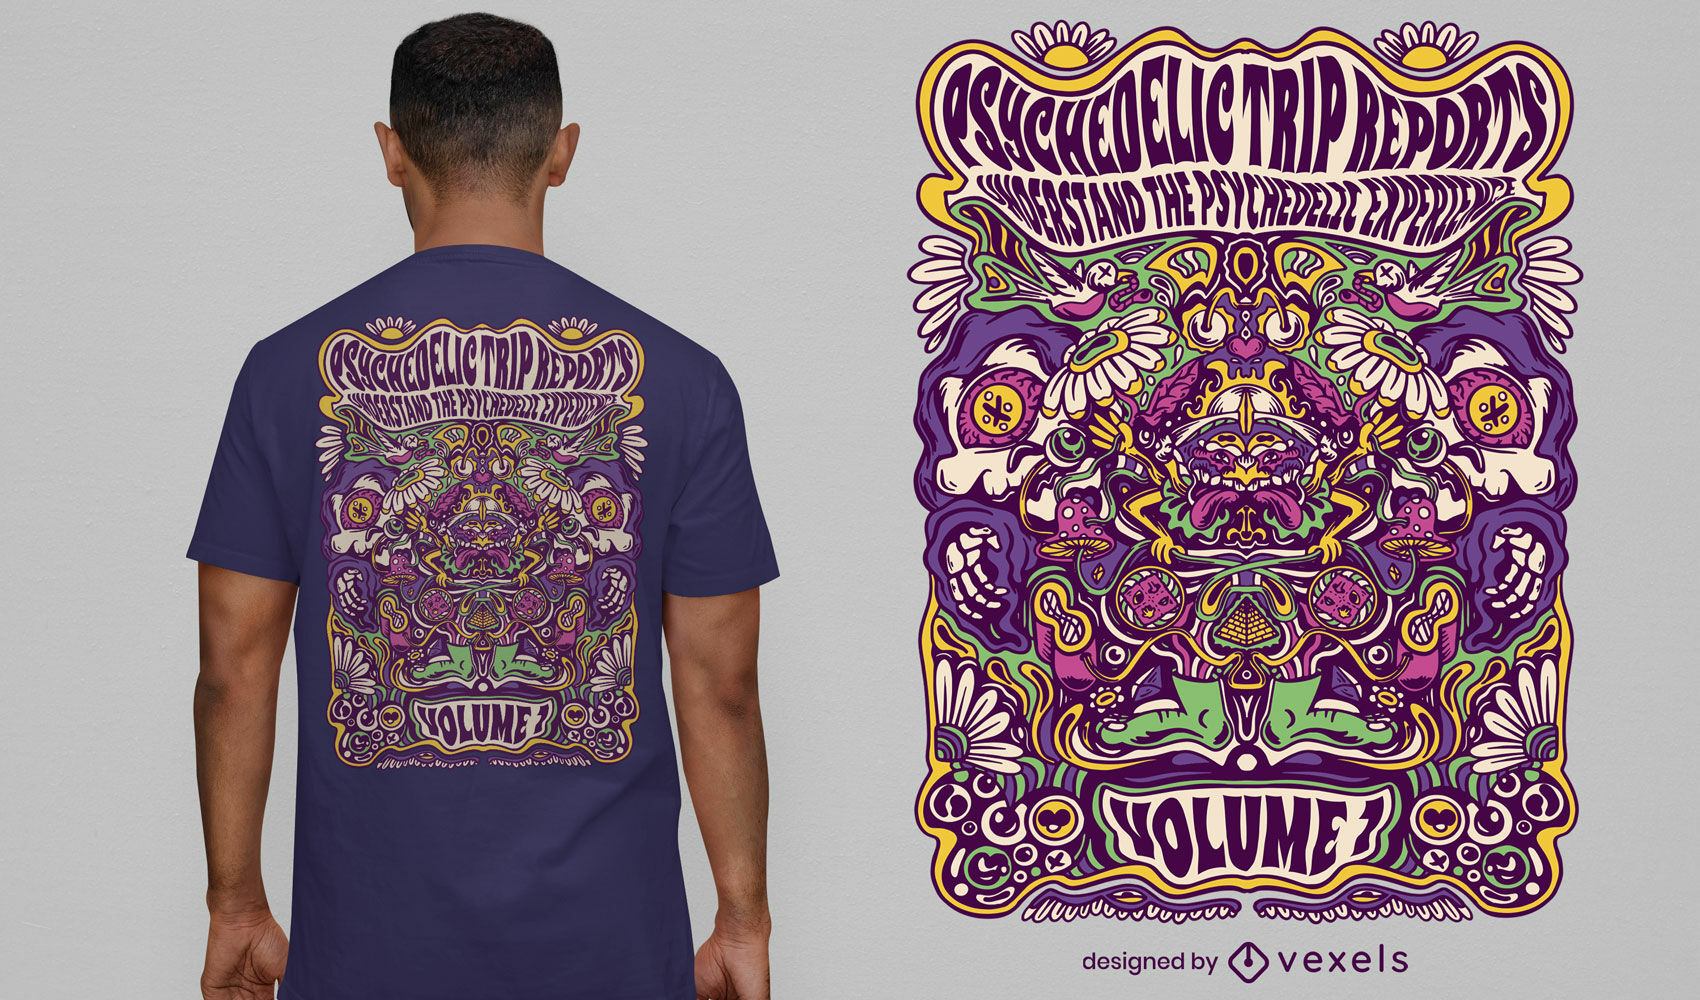 Psychedelic trip experience t-shirt design